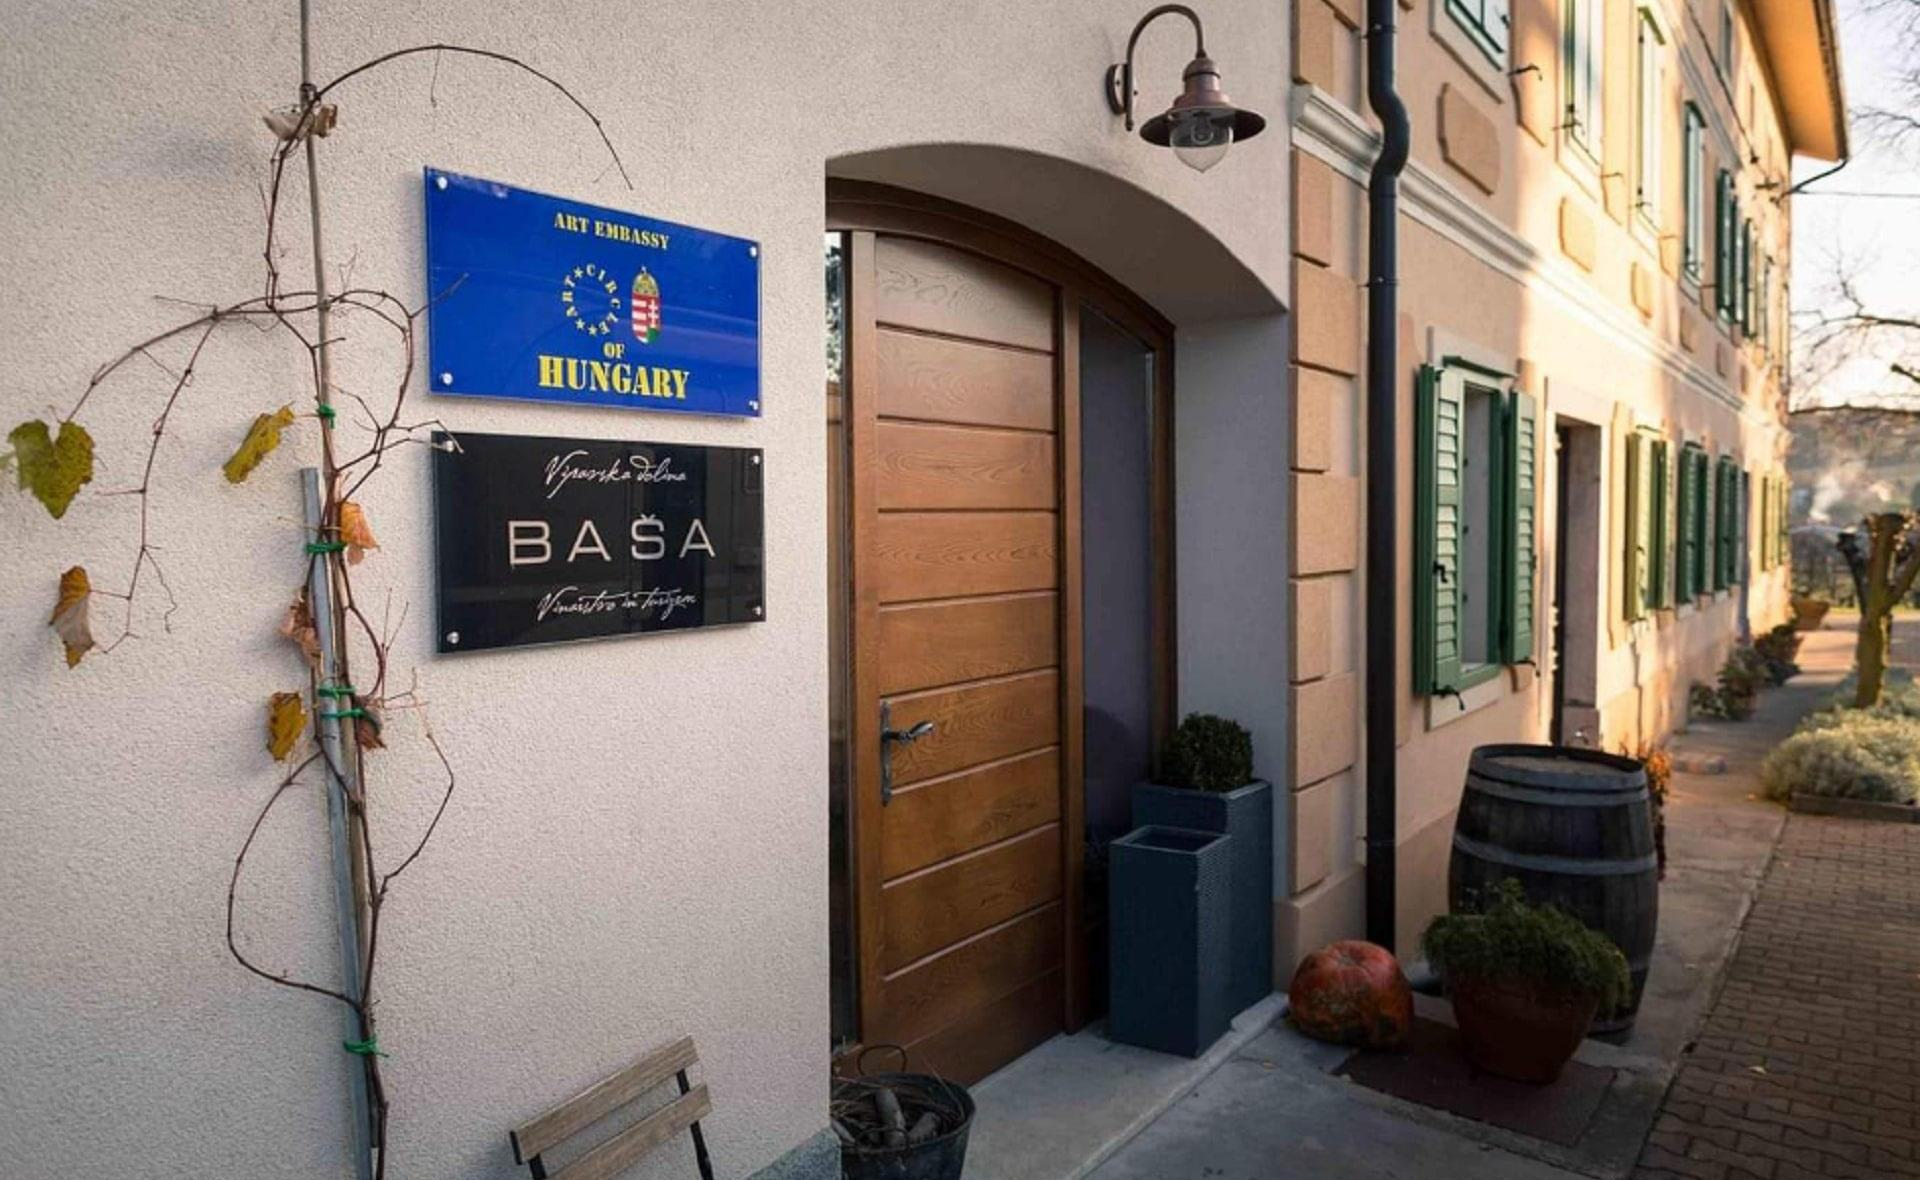 The Baša winery gives home to artists from Hungary